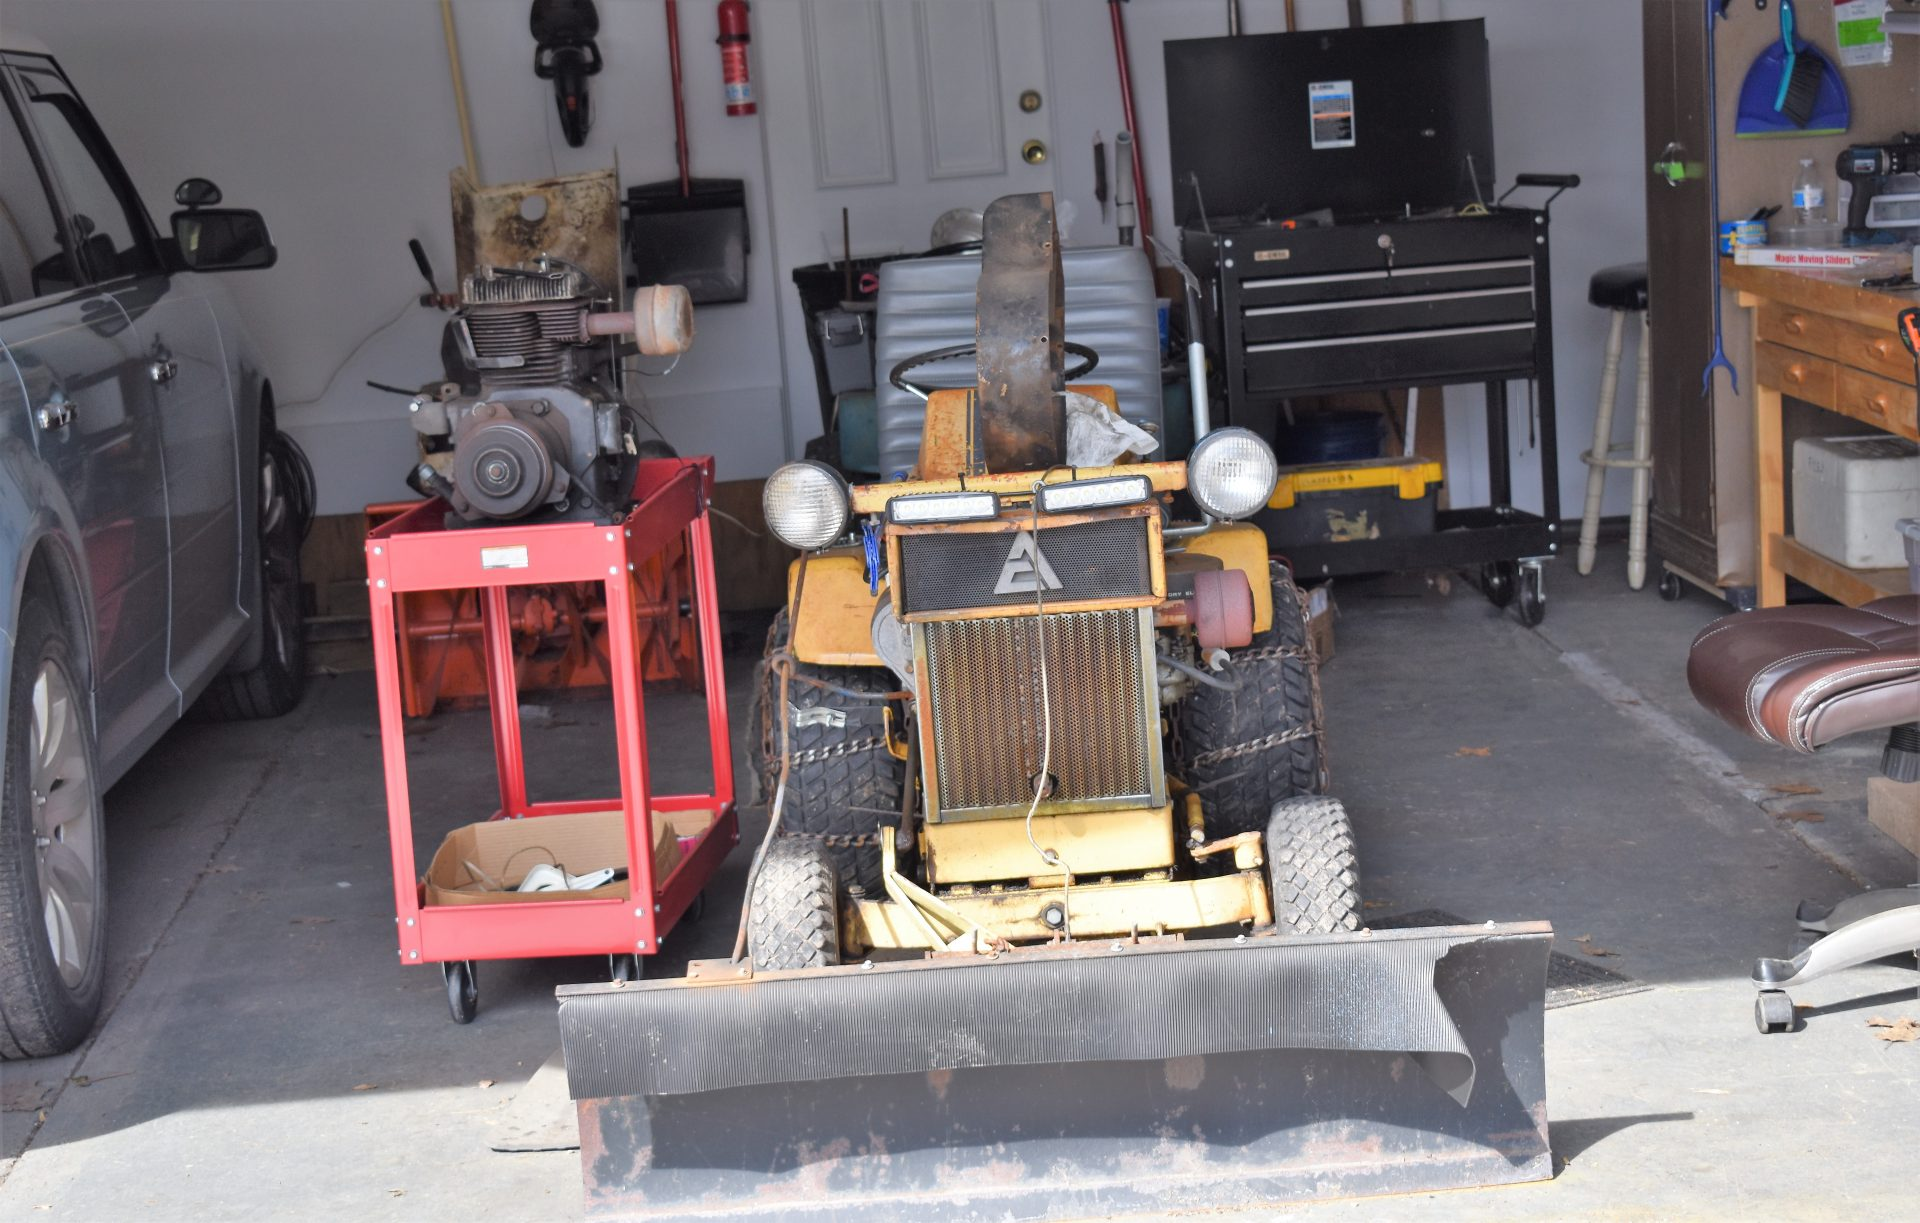 One of Bob Smith's little tractors is seen in his garage on March 11, 2019.